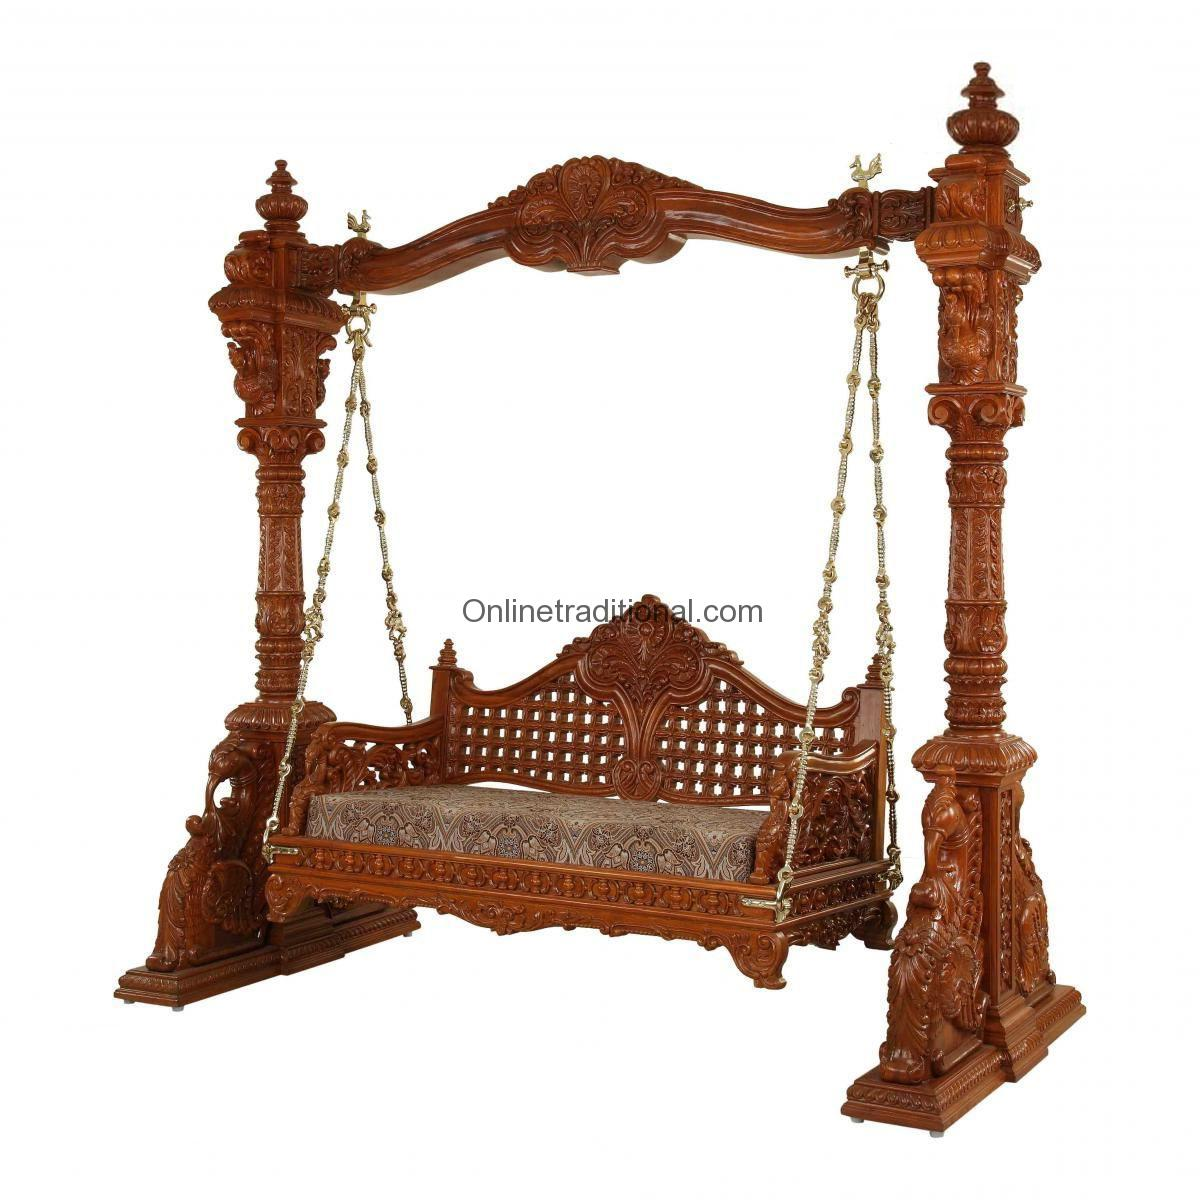 basket swing chair india glider chairs for sale an antique carved teak set by pearlhandicrafts